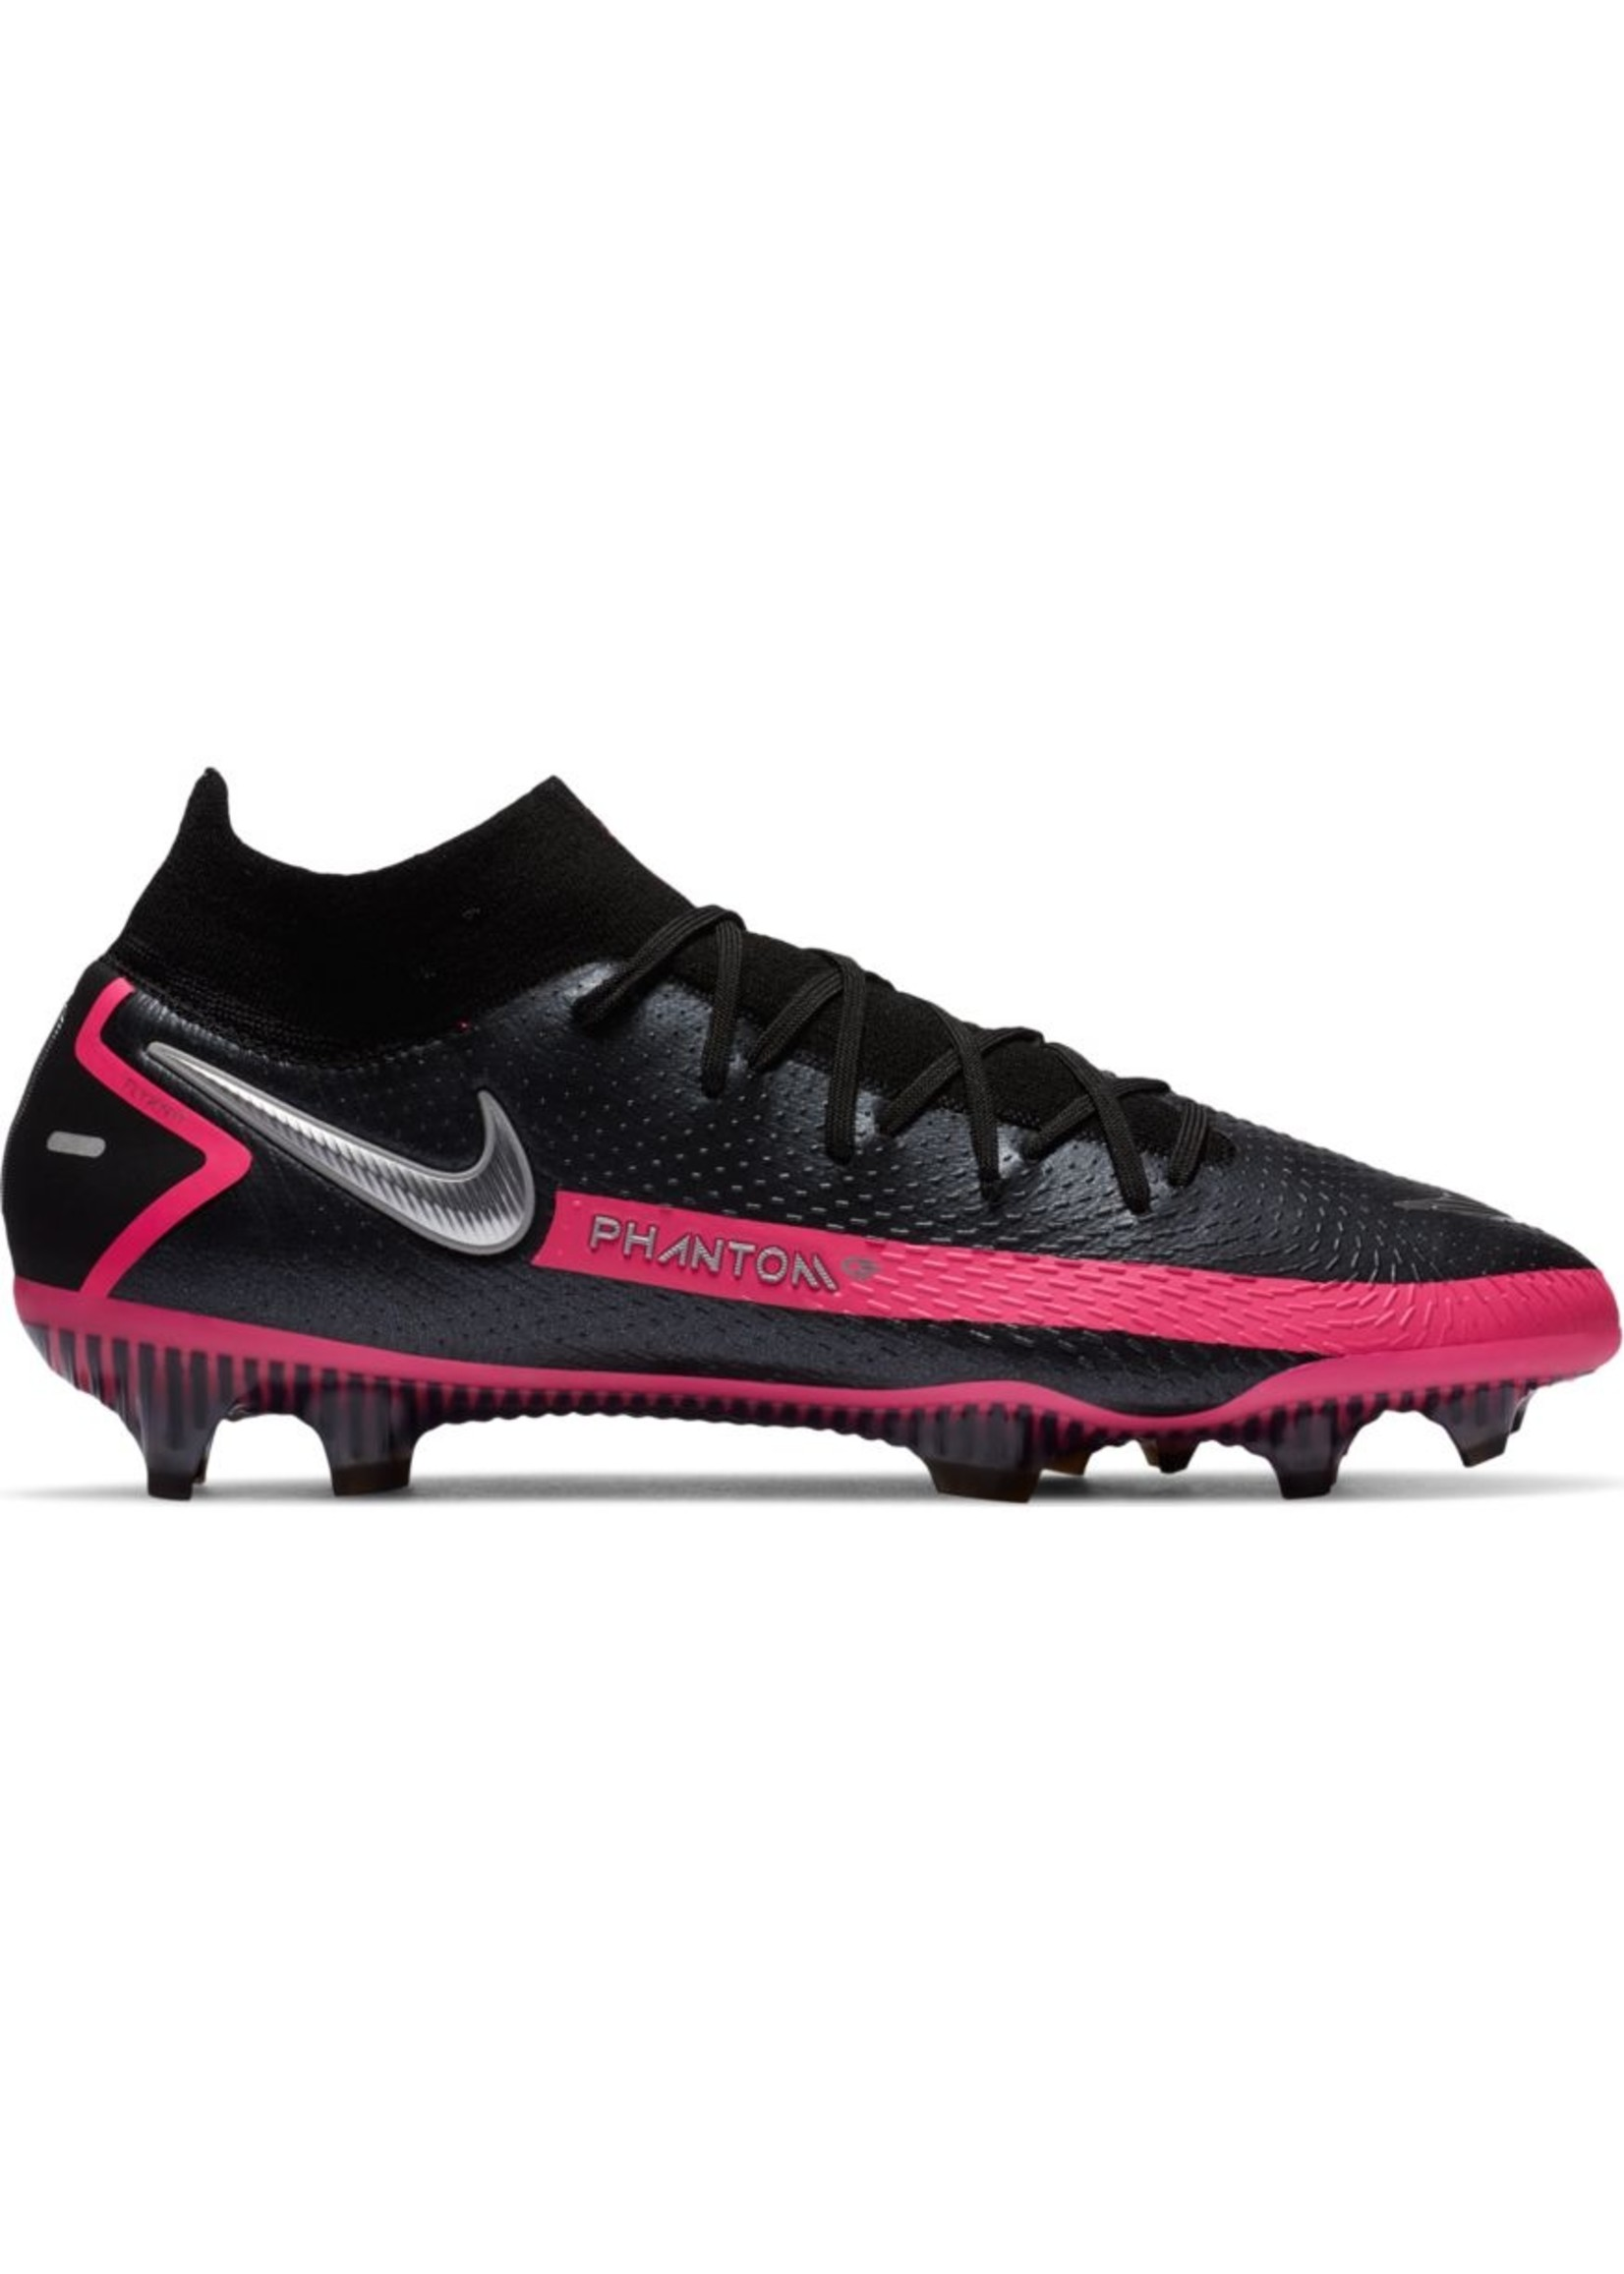 Nike Phantom GT Elite DF FG - Black/Pink